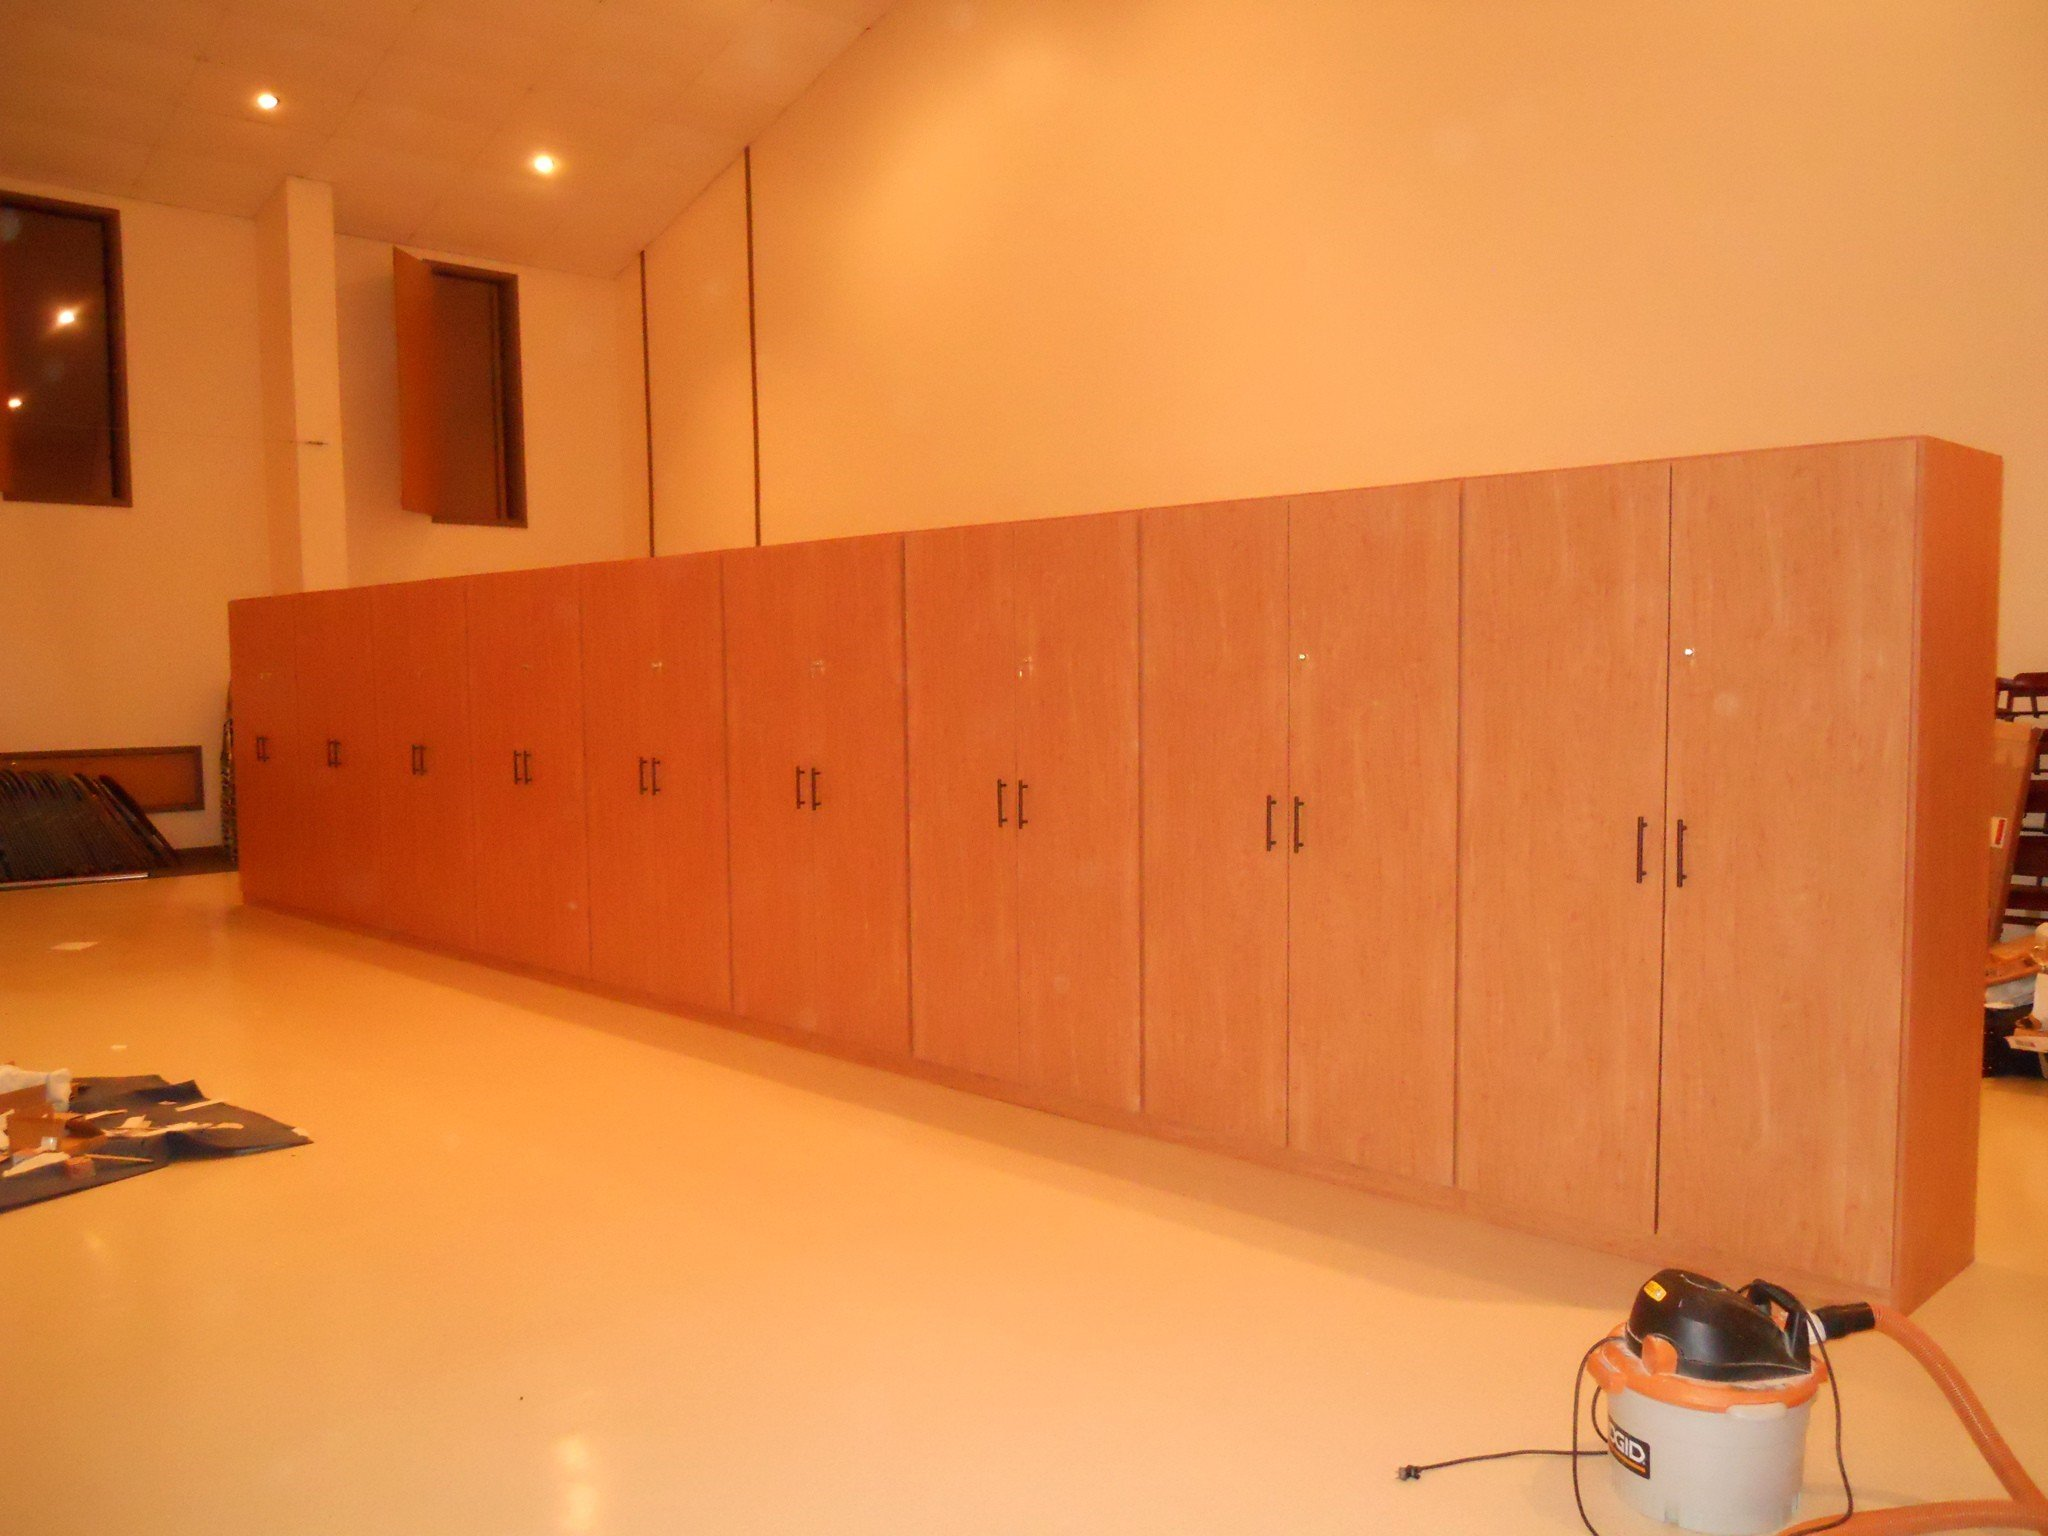 Commercial Wall of Storage Cabinets various colors and styles to choose from